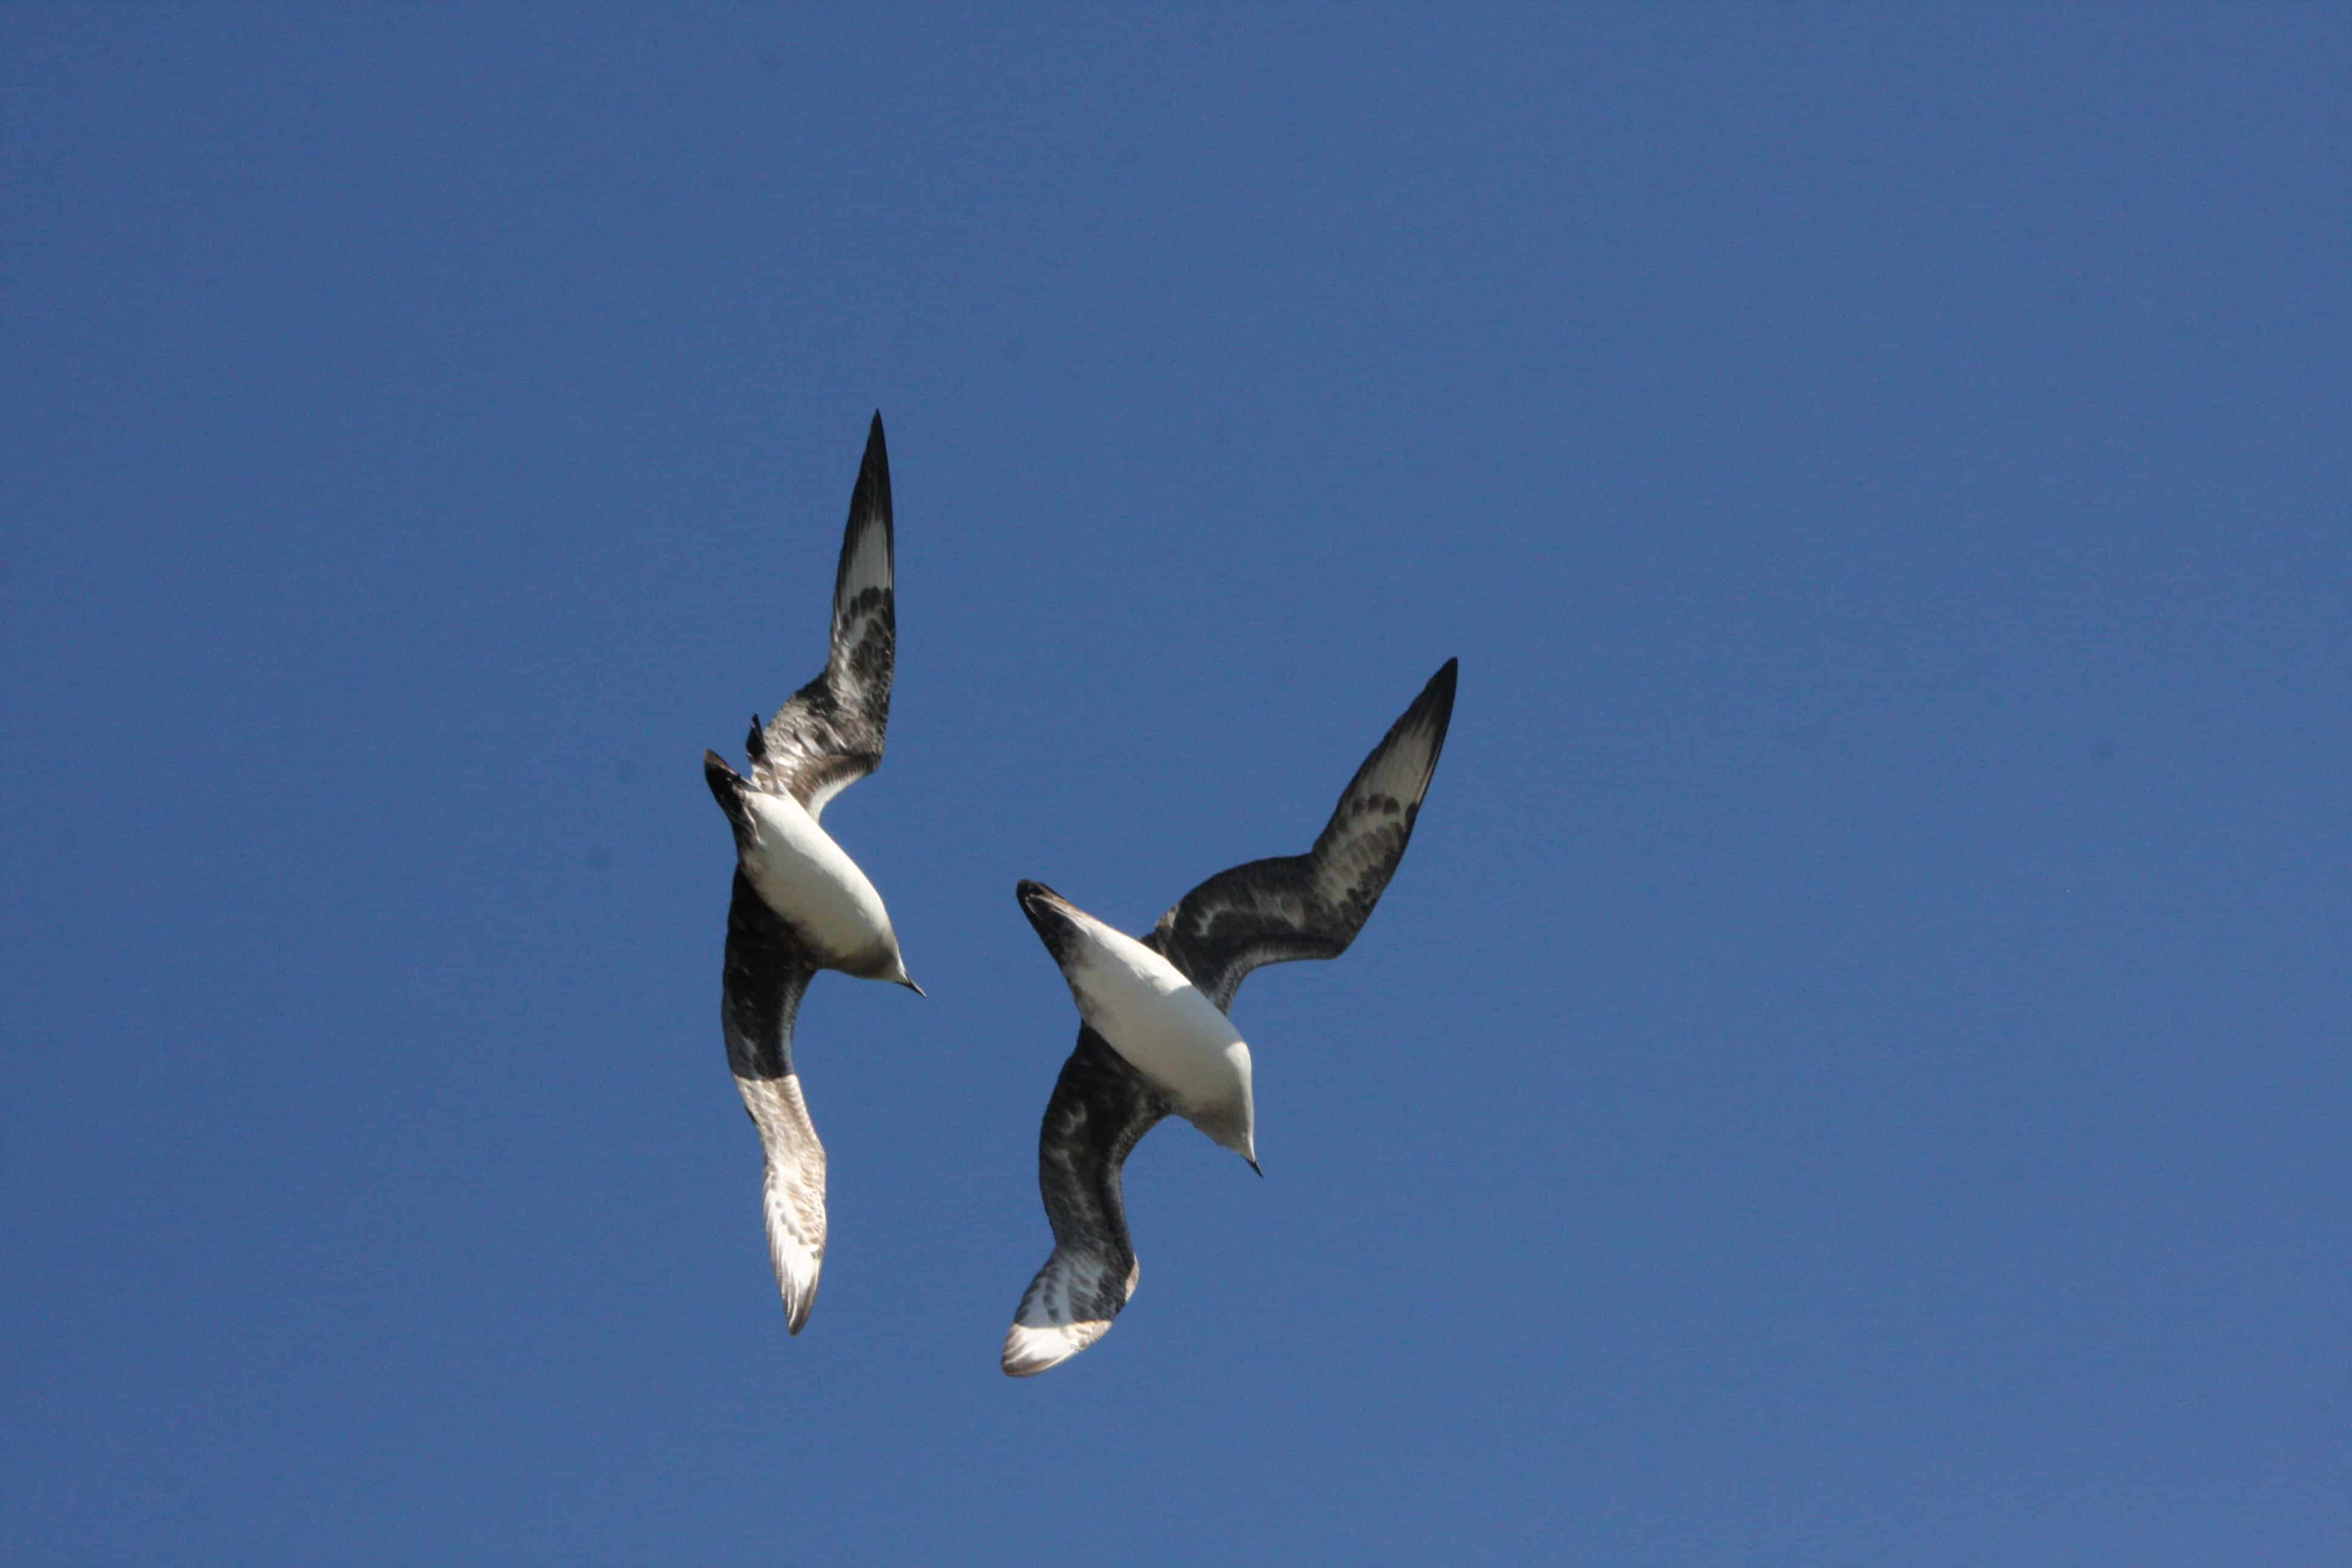 A pair of Kermadec petrels in display flight over the breeding grounds on Ducie Island. Several species of petrels breed on Ducie, Henderson and Oeno Island, in some cases constituting major parts of the world populations. Copyright: Dr Mike Pienkowski